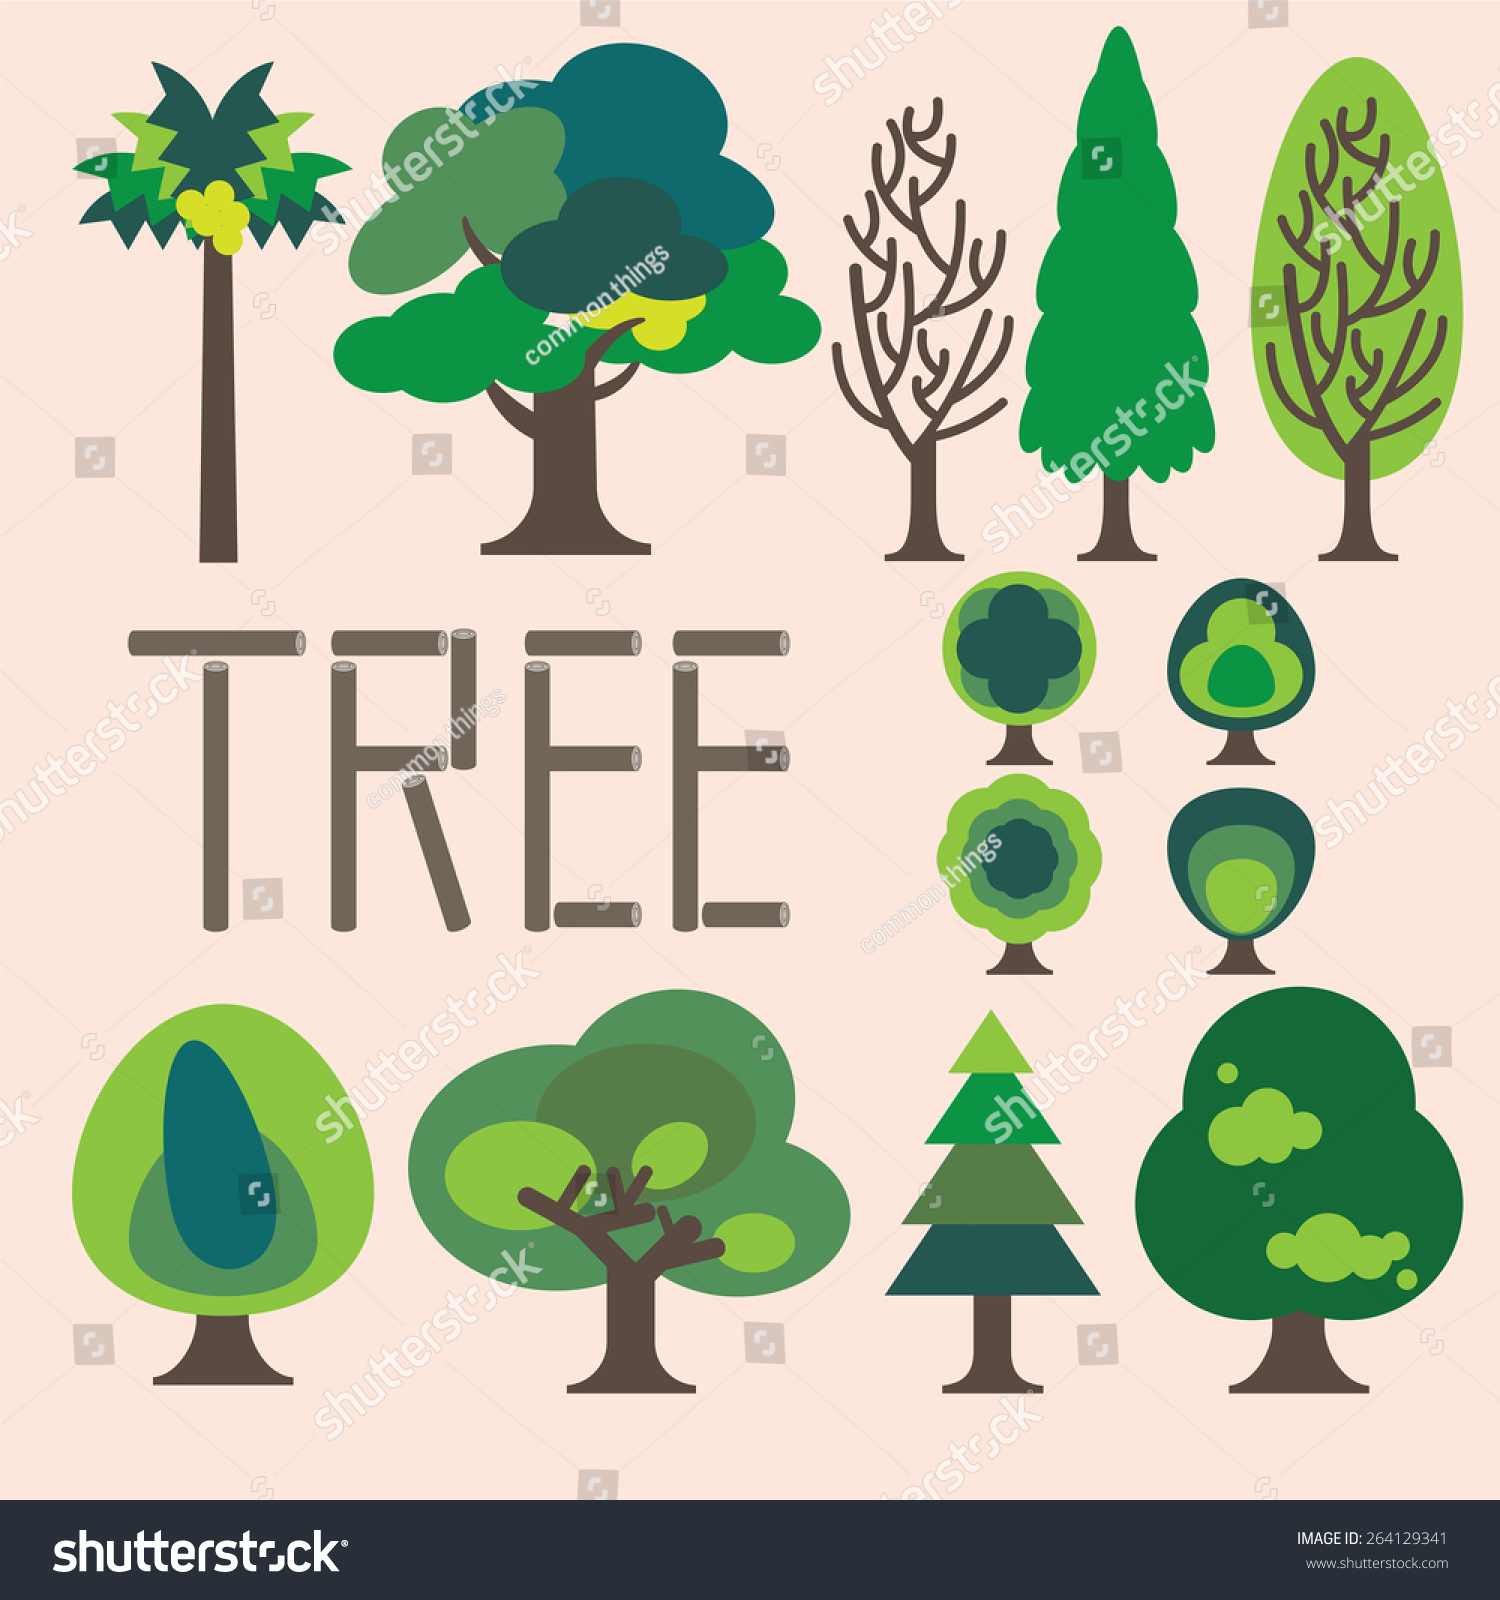 Tree collection Simple Graphic Trees Green Trees Stock ...